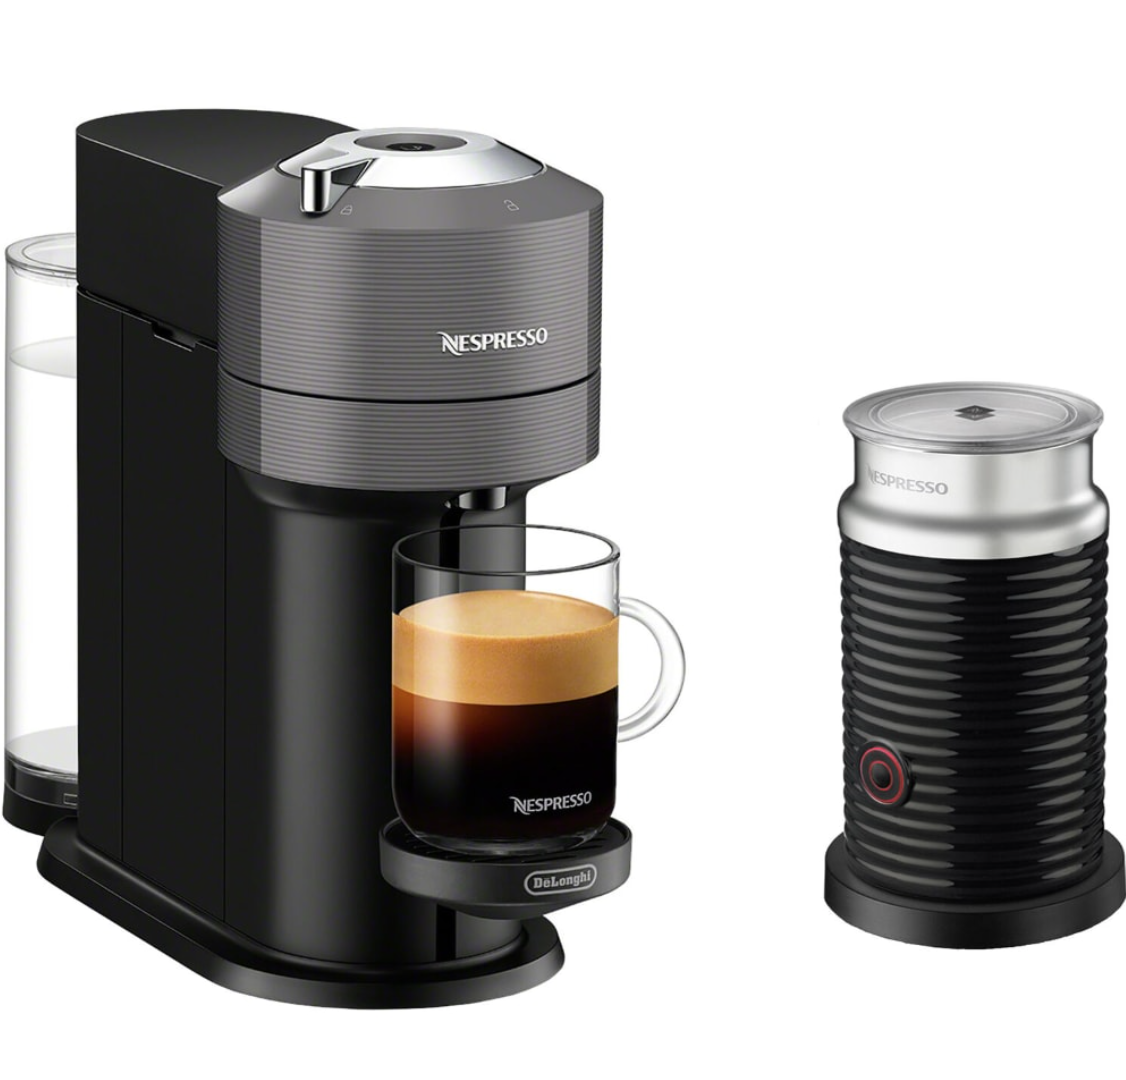 nespresso machine and the Aeroccino frother